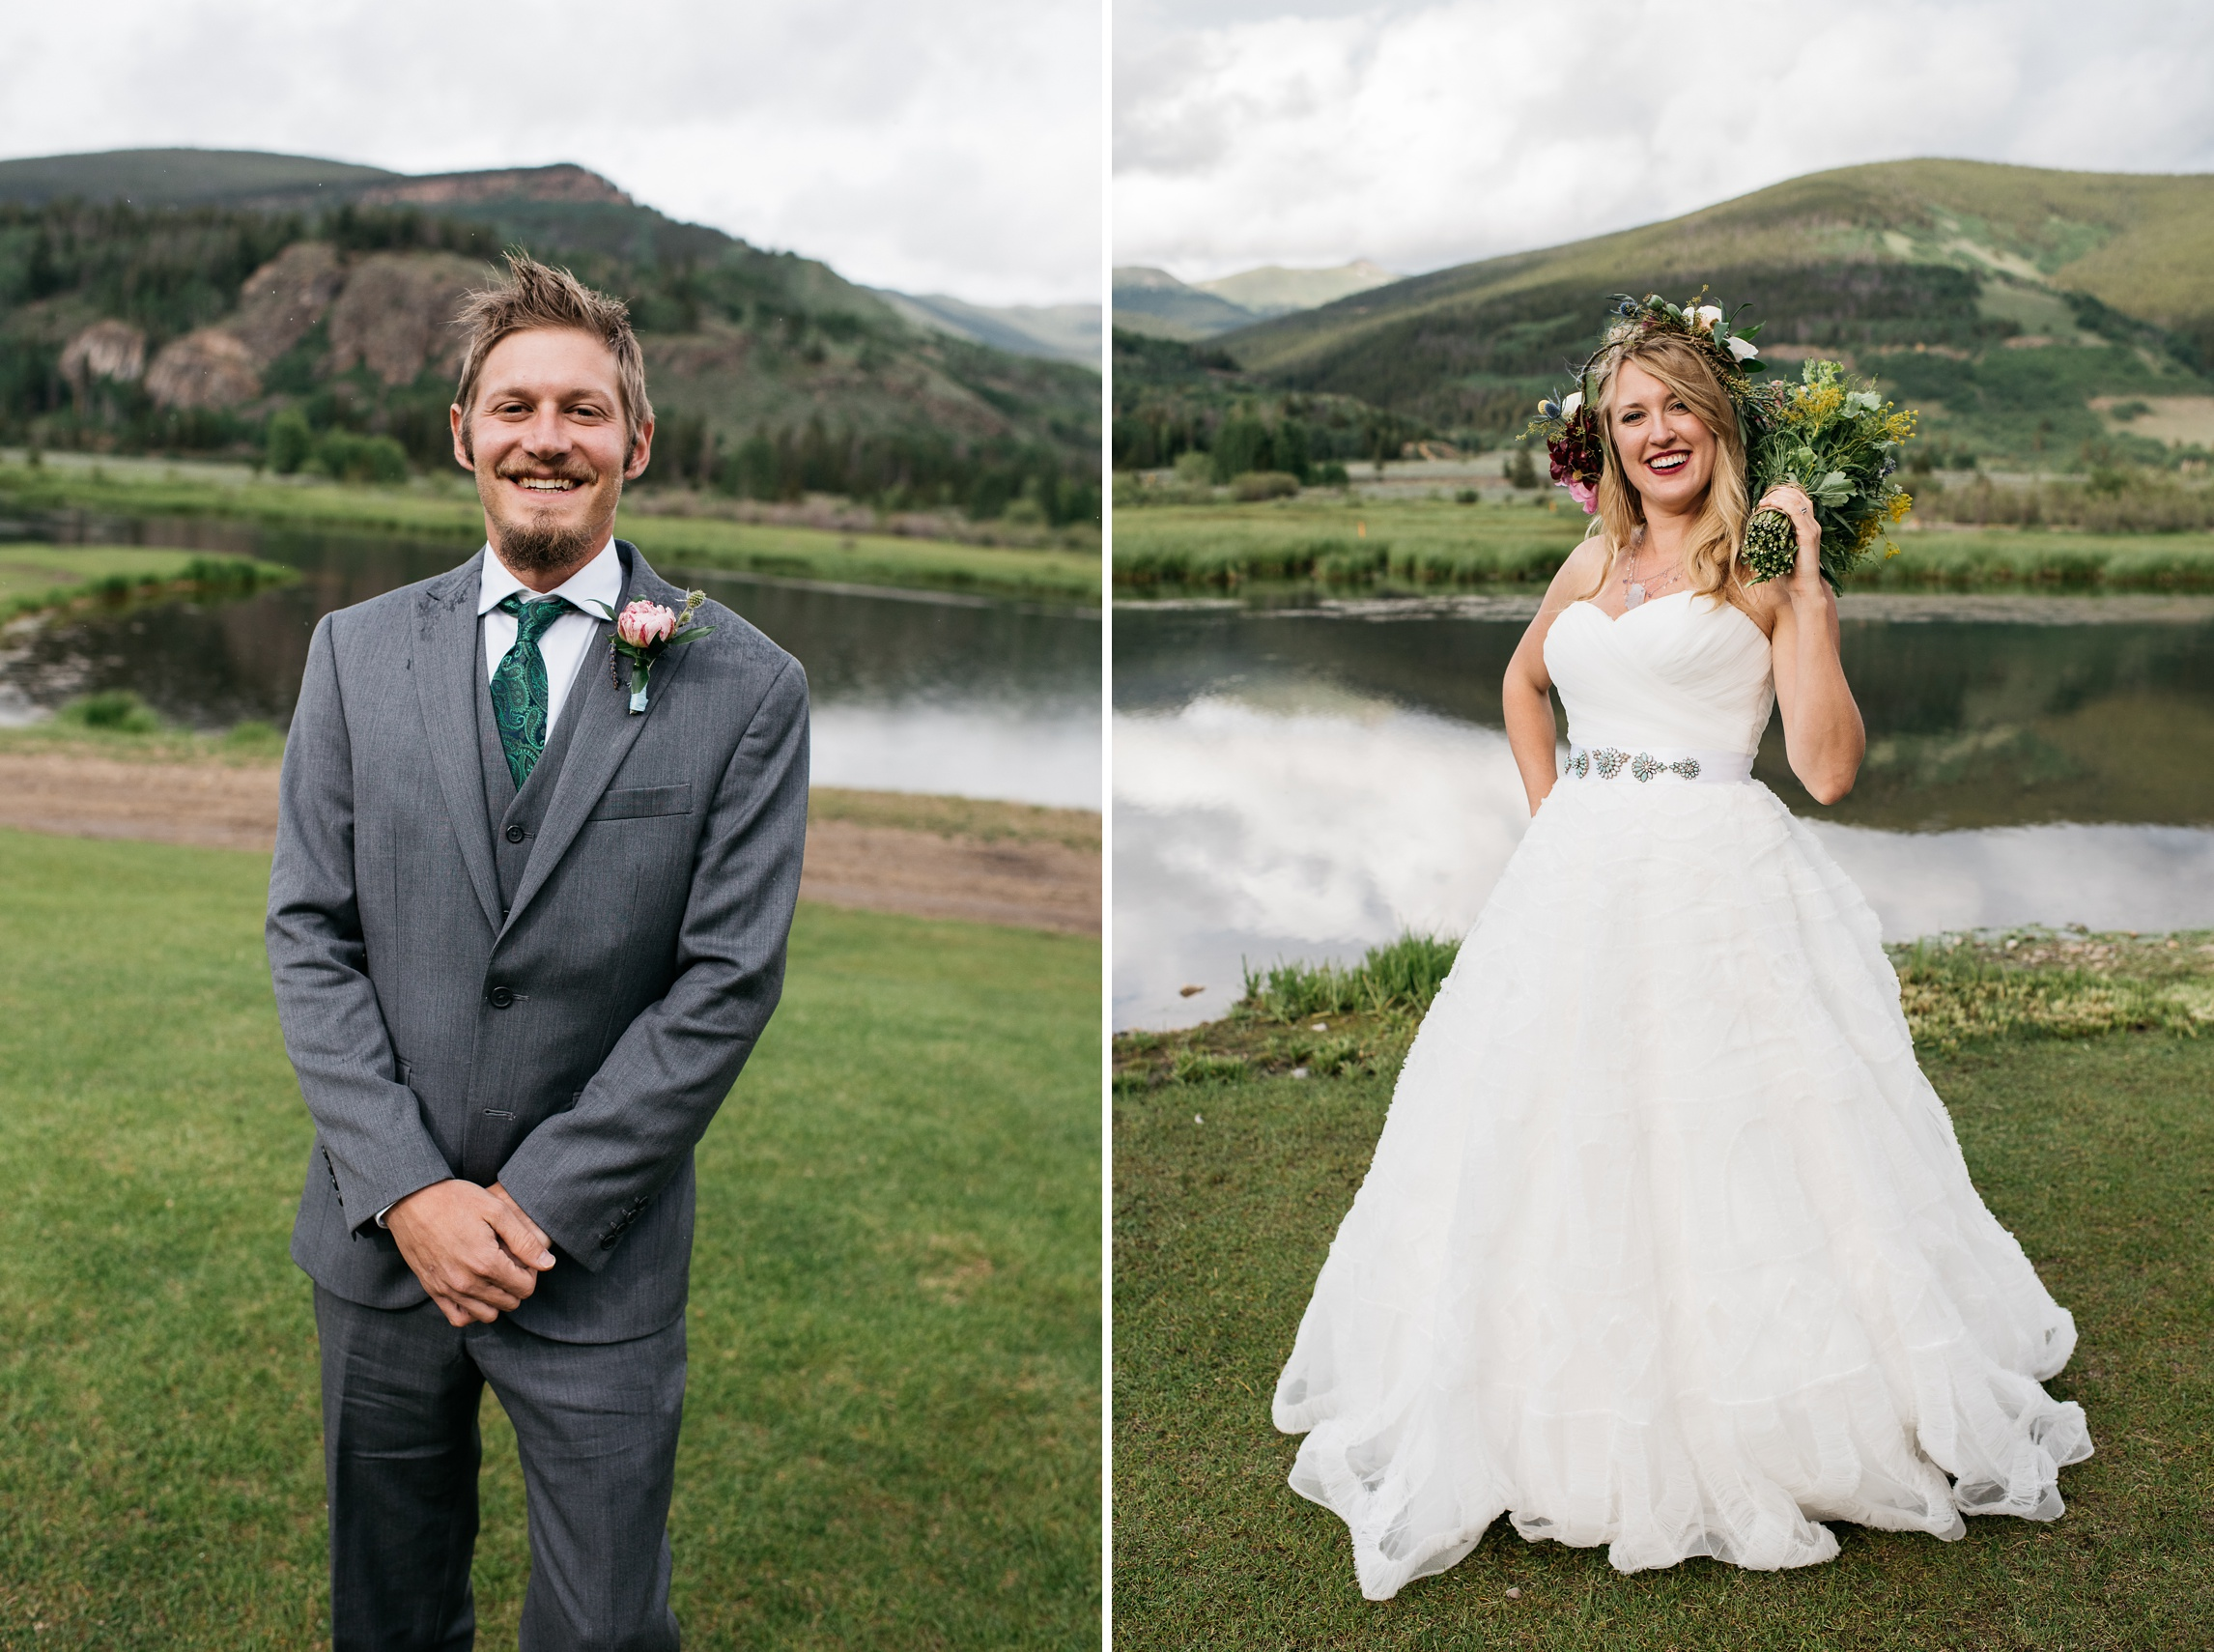 A groom and a bride on their wedding day at Camp Hale near Vail, Colorado. Wedding photography by Sonja Salzburg of Sonja K Photography.